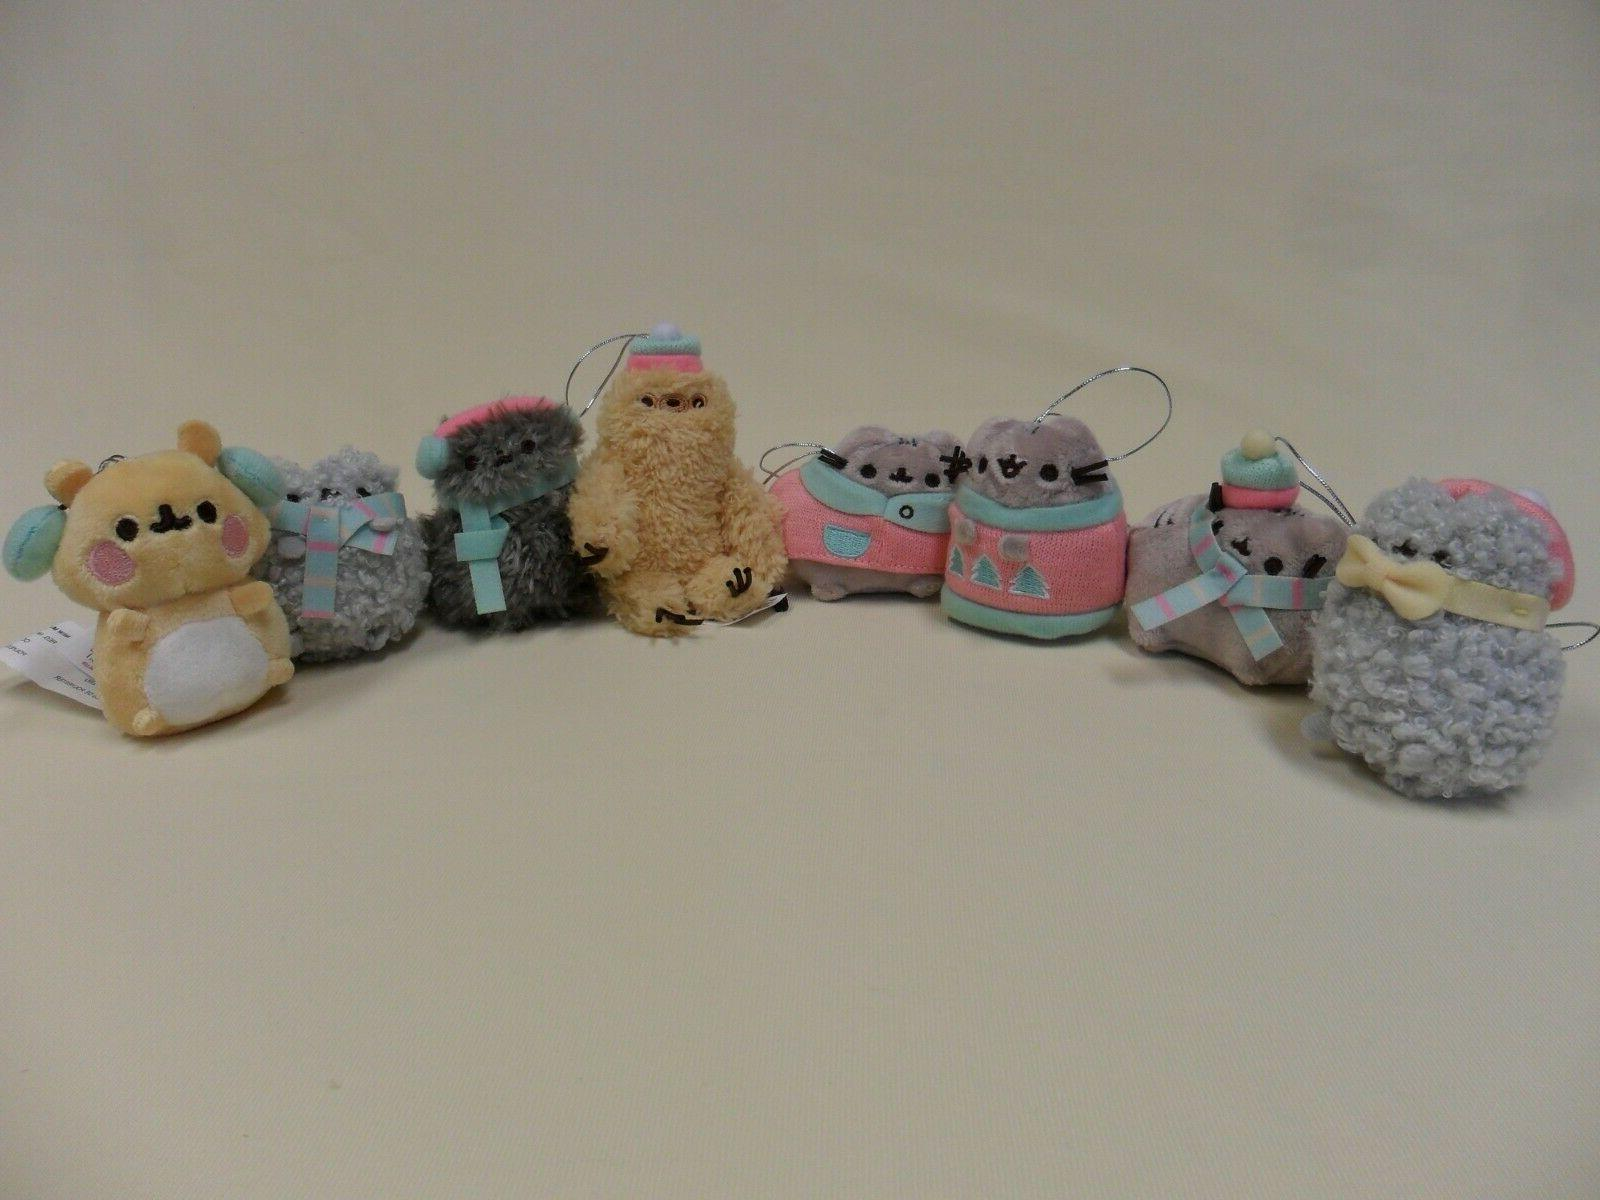 new pusheen blind box complete set of